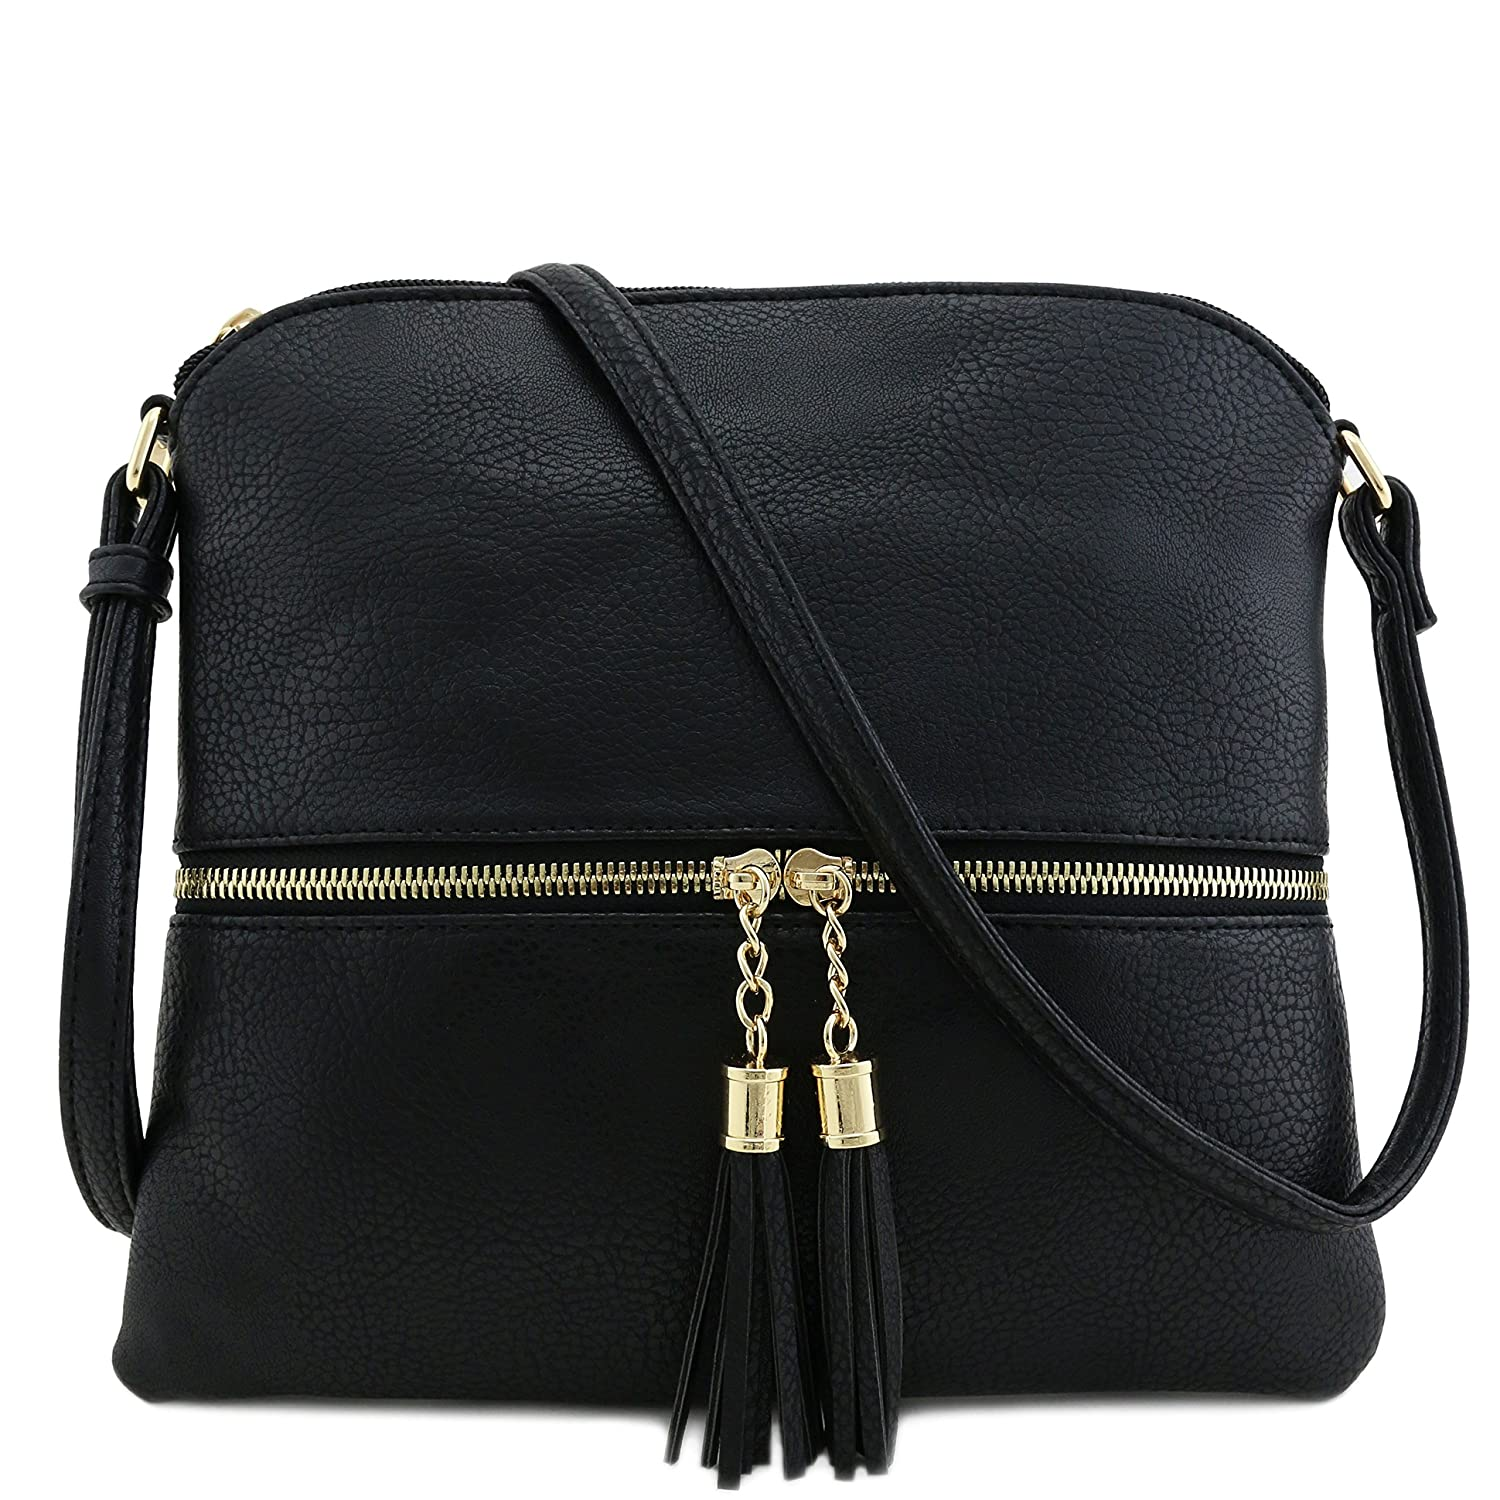 b71c20c8c0f6 Amazon.com  Tassel Accent Medium Crossbody Bag Black  Clothing